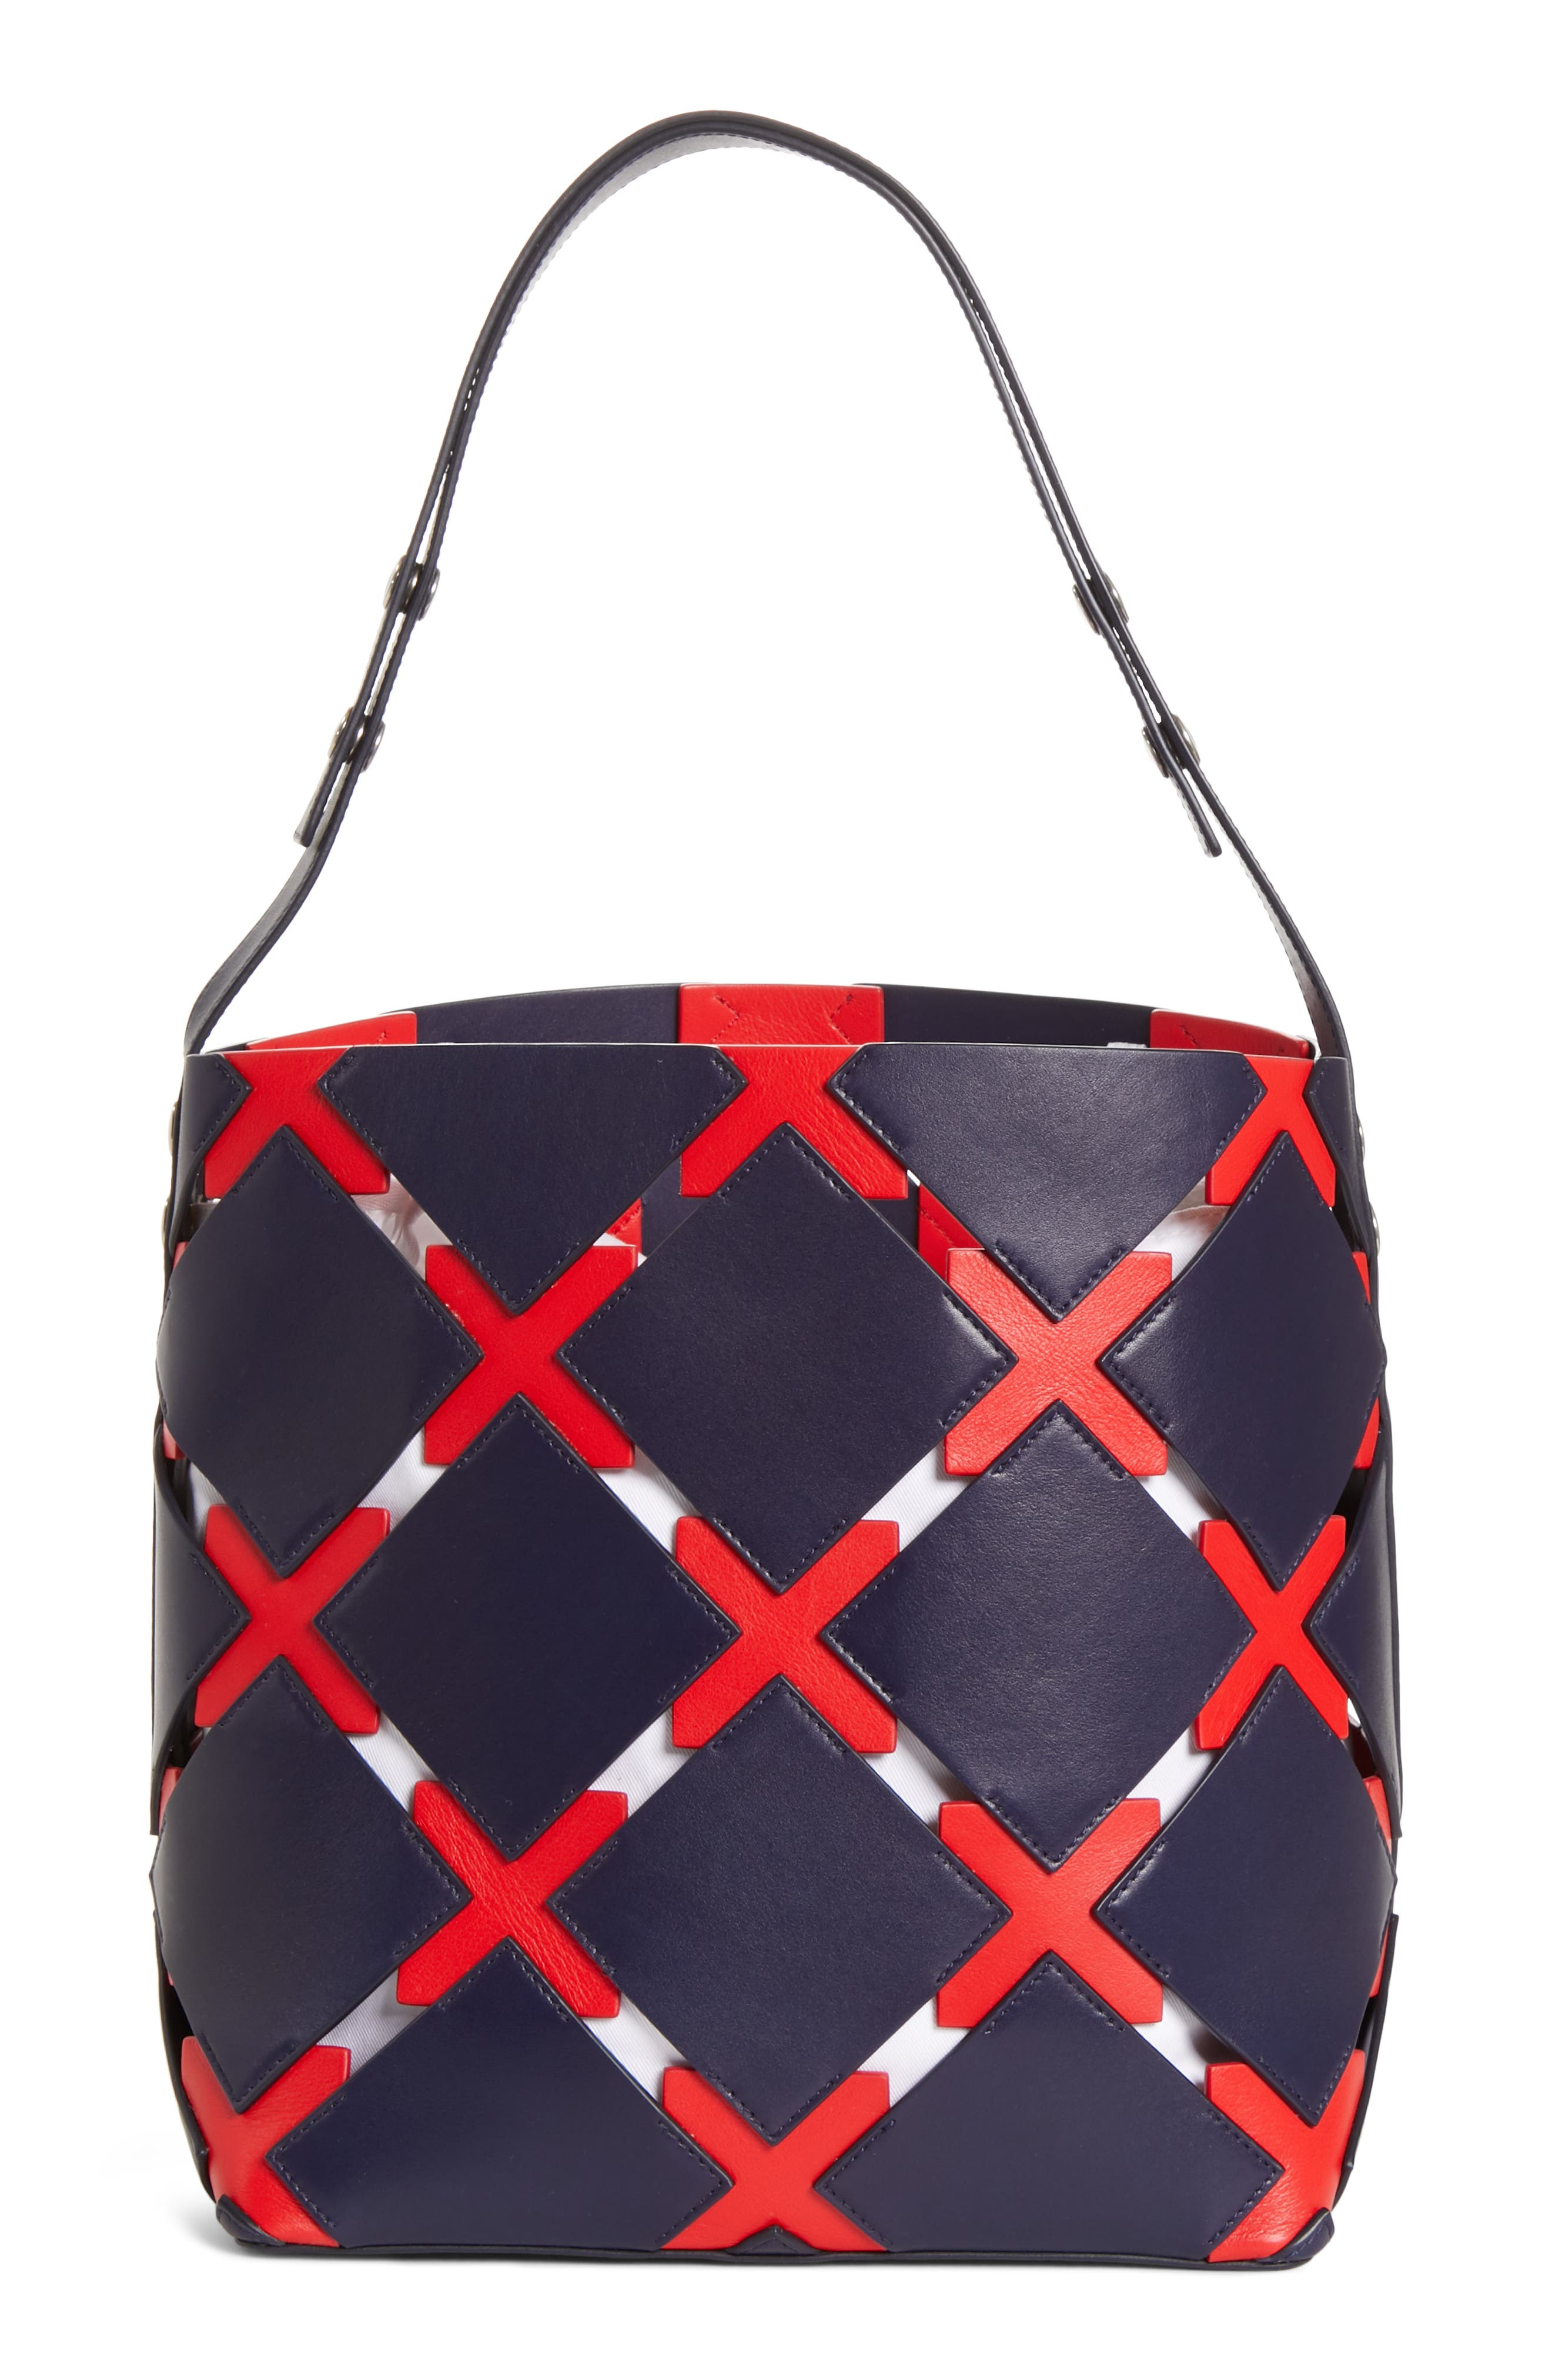 Patchwork Quilt Leather Bucket Bag,                             Alternate thumbnail 3, color,                             NAVY/ RED